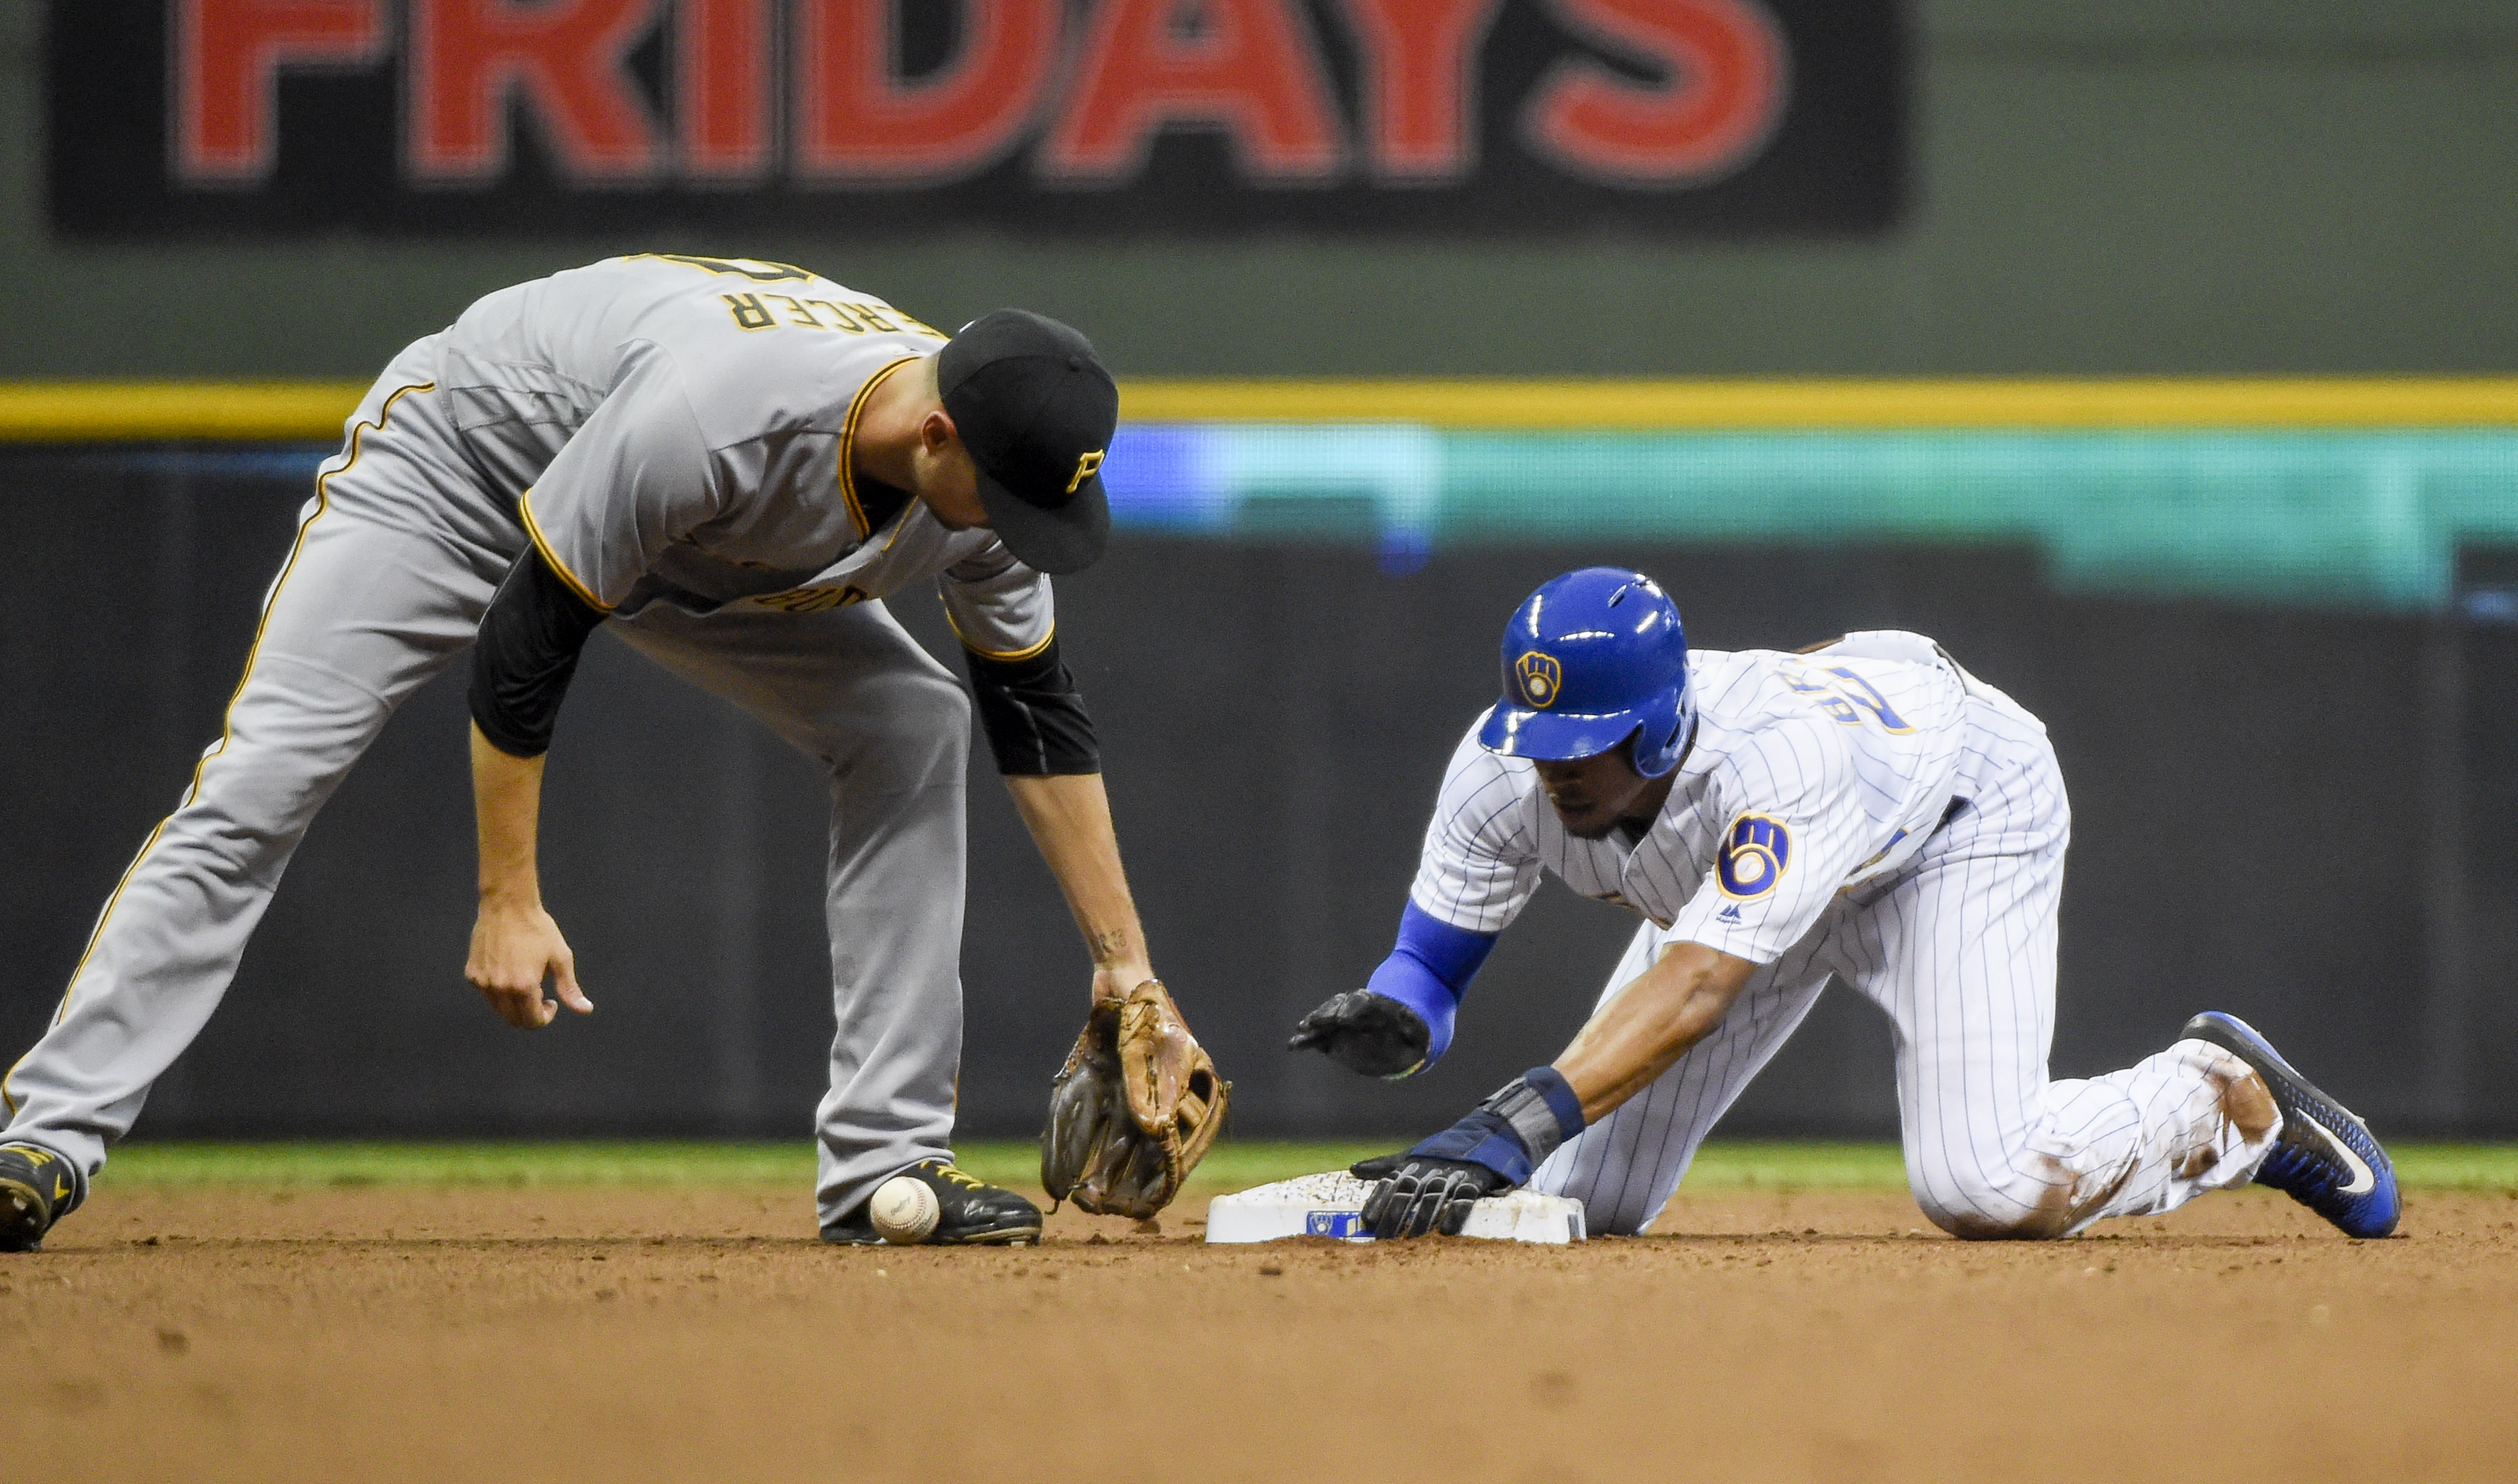 Milwaukee Brewers' Keon Broxton, right, steals second base as Pittsburgh Pirates shortstop Jordy Mercer, left, fields the ball during the fourth inning of a baseball game Friday, July 29, 2016, in Milwaukee. (AP Photo/Benny Sieu)